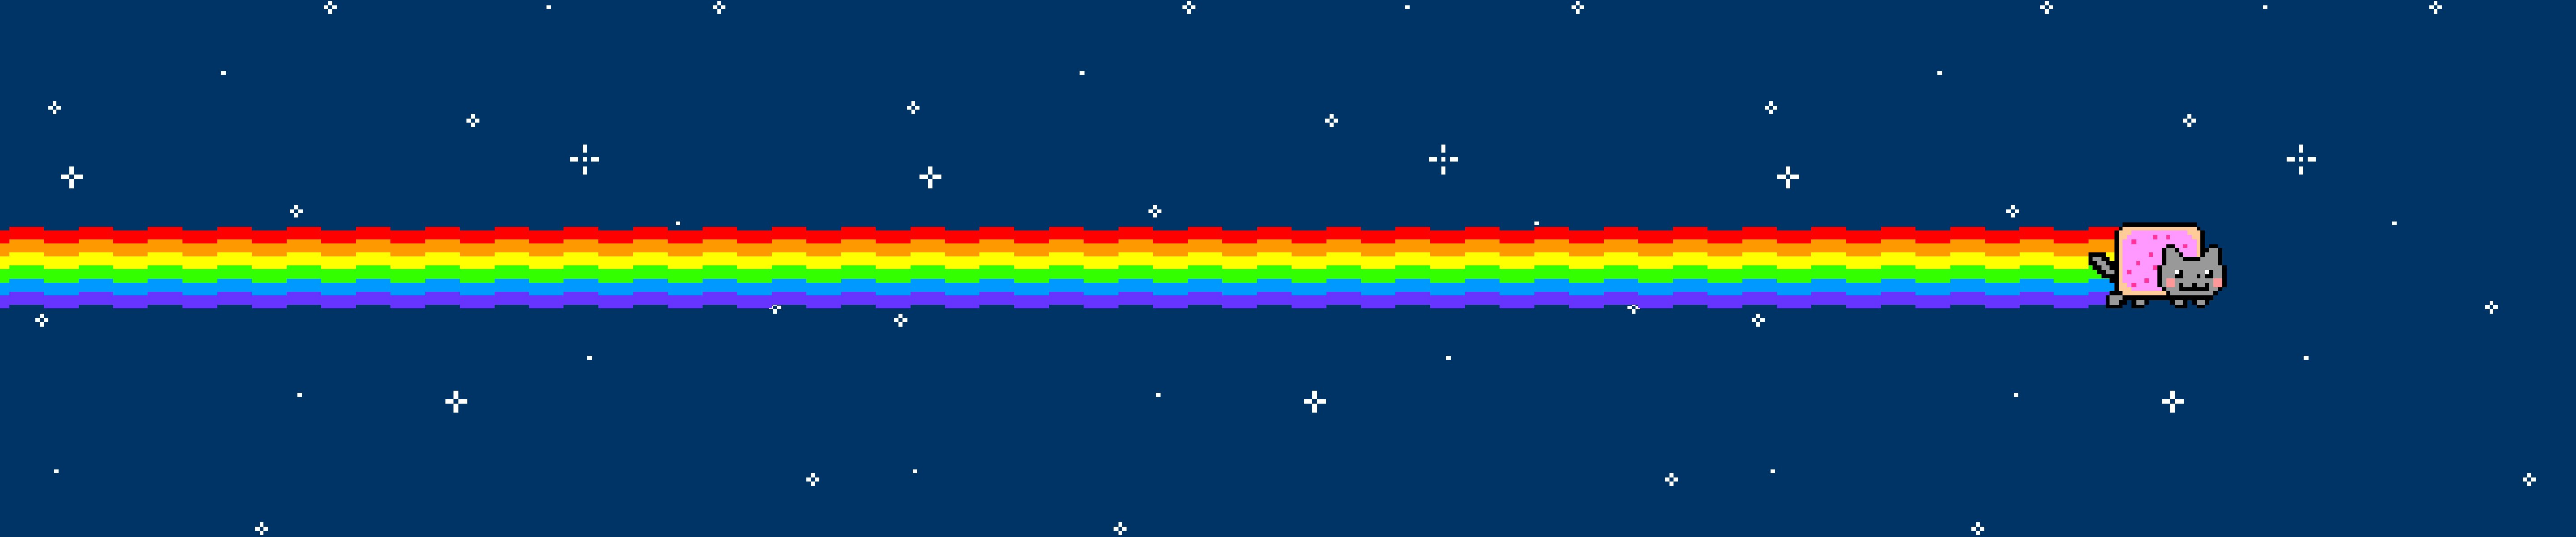 Free download Nyan Cat wallpaper ID:498879 triple screen 5760x1200 for PC